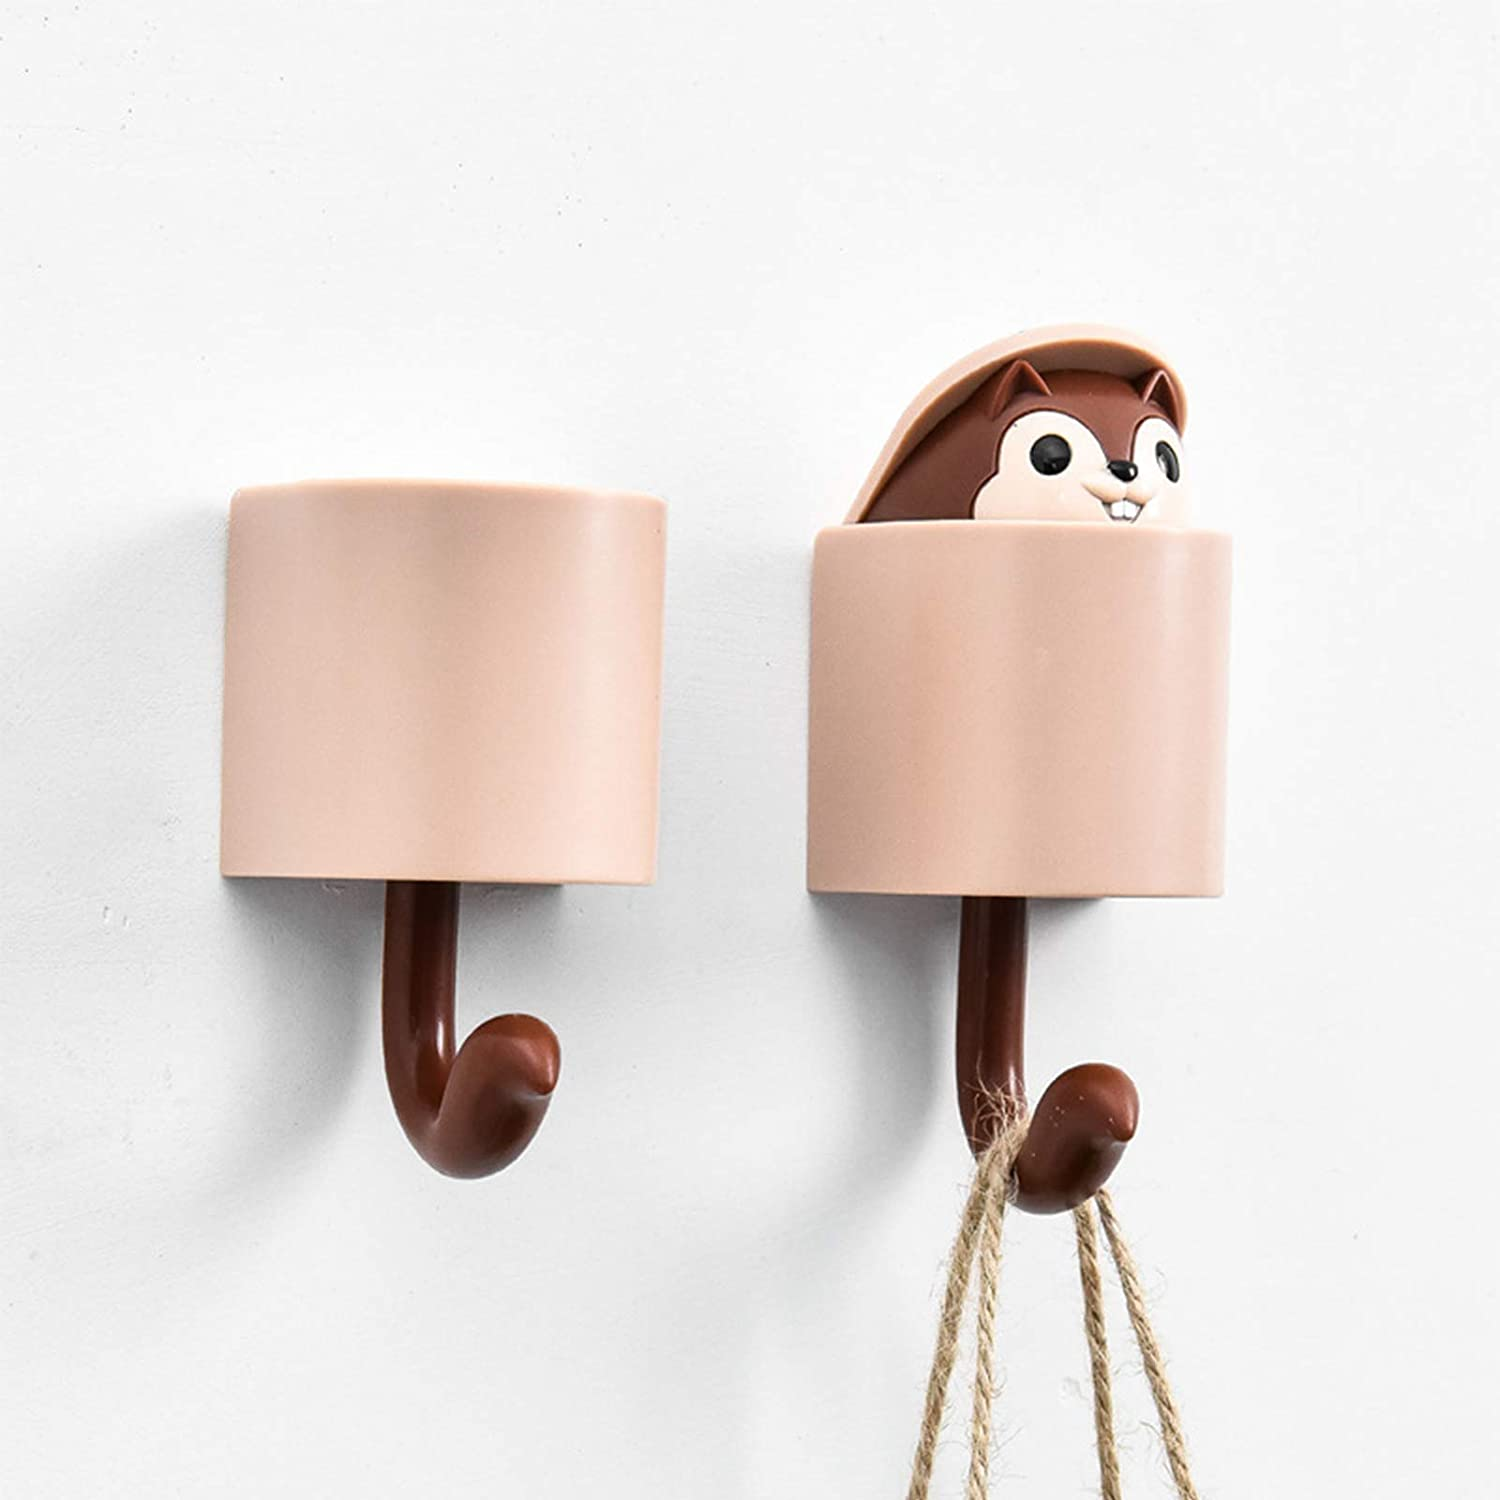 Amazon Com Key Holder For Wall Decorative Lawanva Pop Up Smile Squirrel Wall Key Holder 2 Pcs Brown Office Products